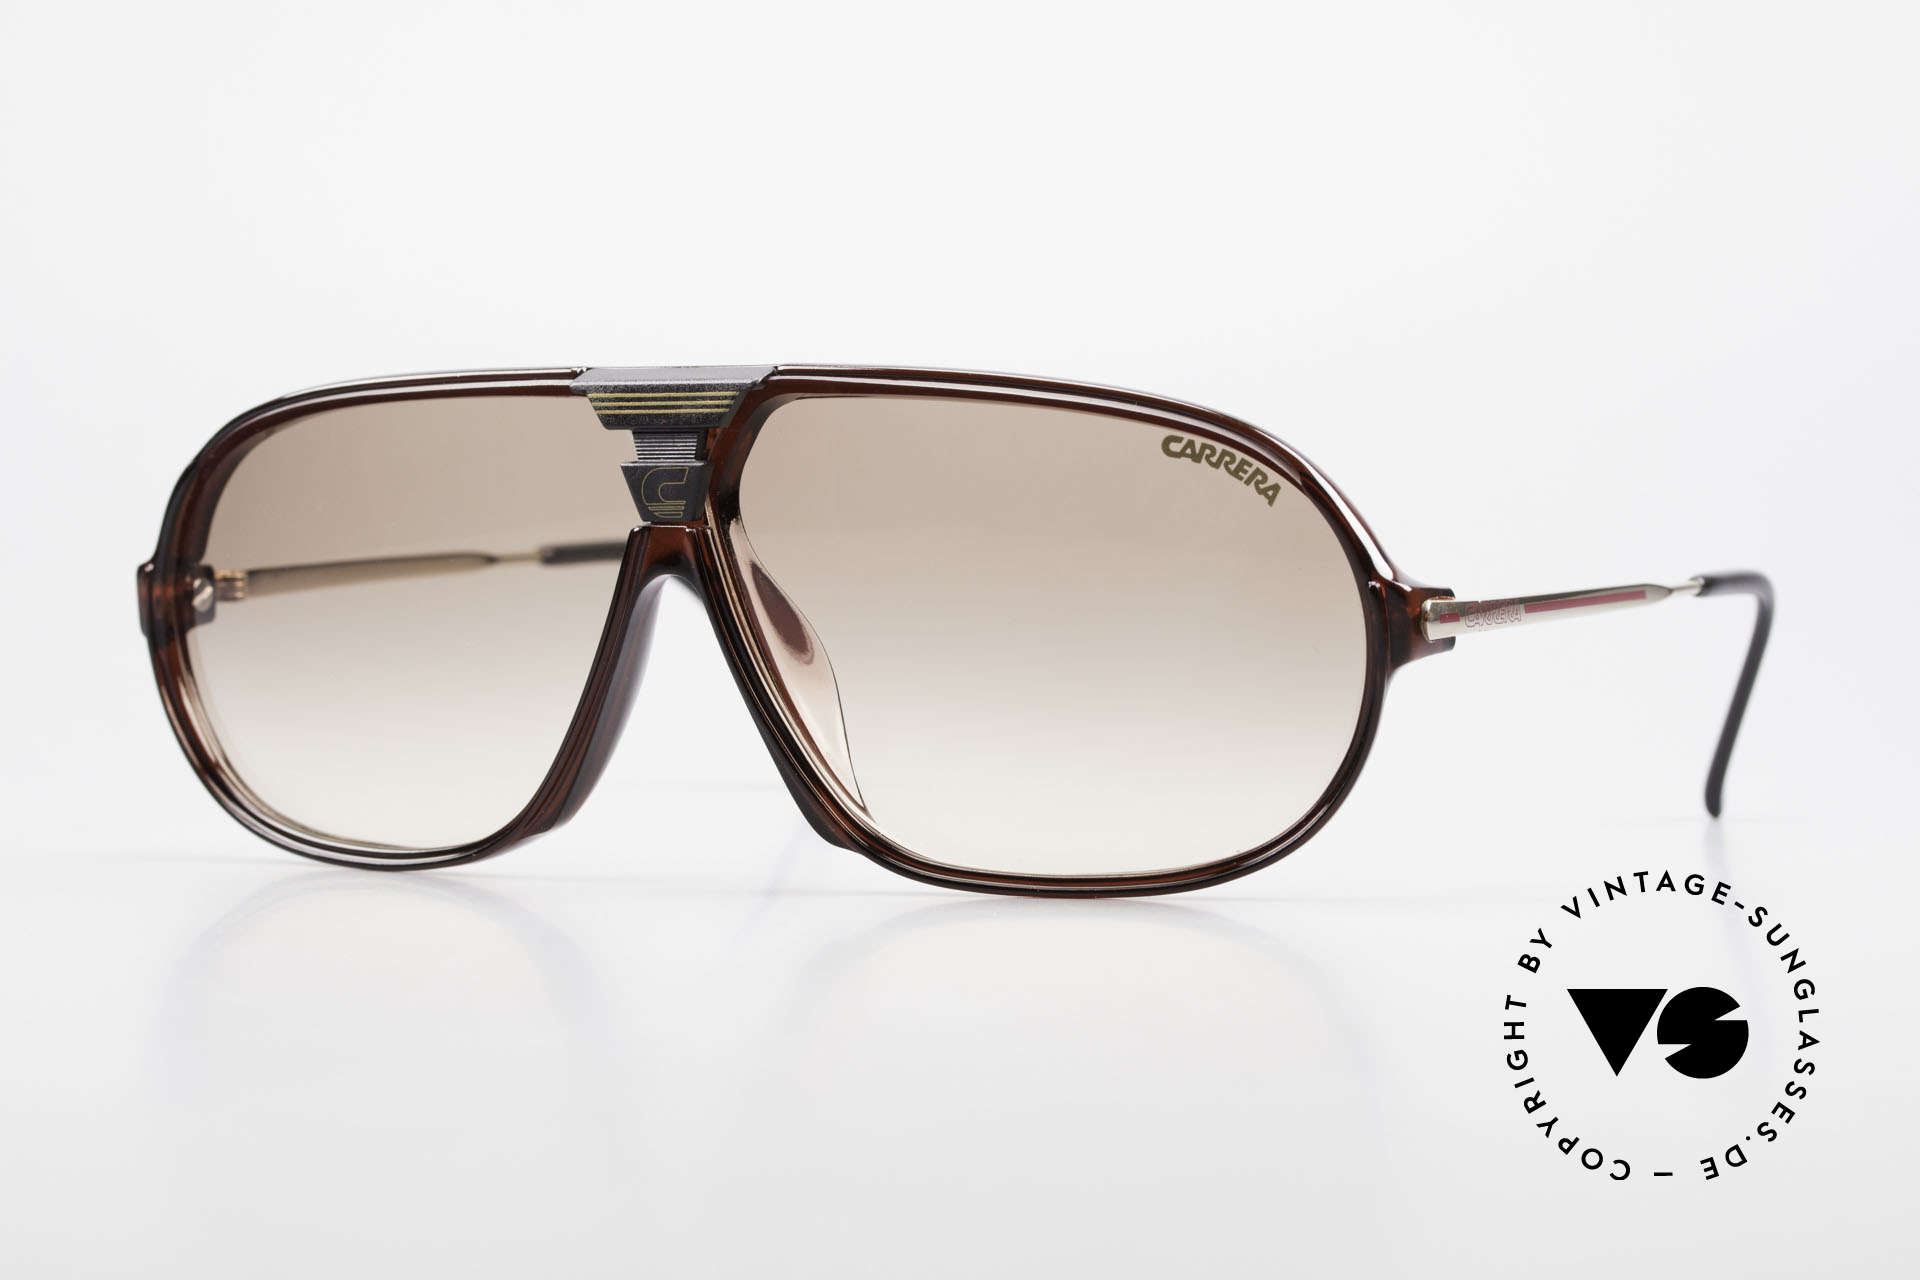 Carrera 5416 80's Interchangeable Lenses, sensational sports shades by Carrera from 1988, Made for Men